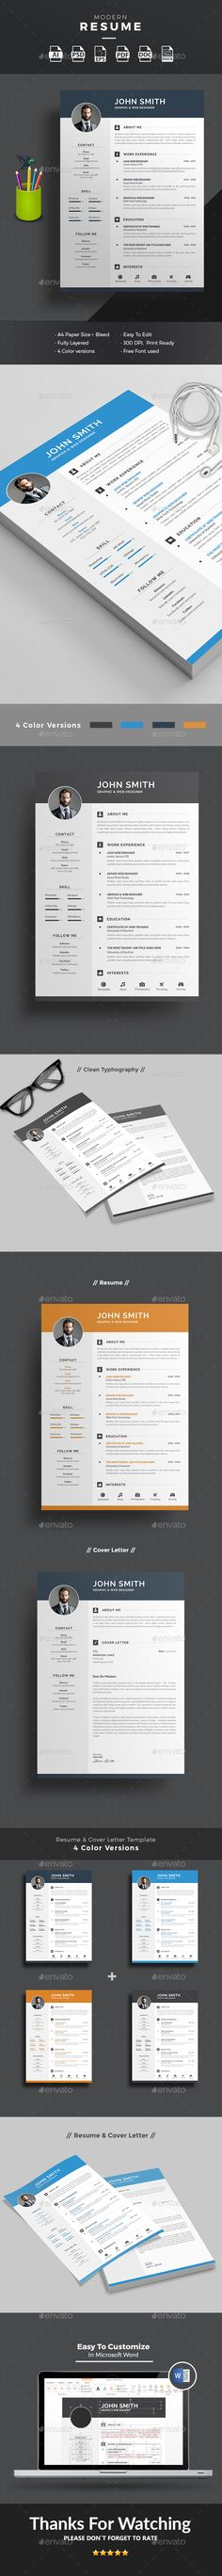 #Resume - clean resume, creative, cv, cv template, elegant, indesign resume template, minimal, modern resume, photoshop resume template, professional, resume, resume design, resume format, resume qualifications, resume templates, simple resume, swiss